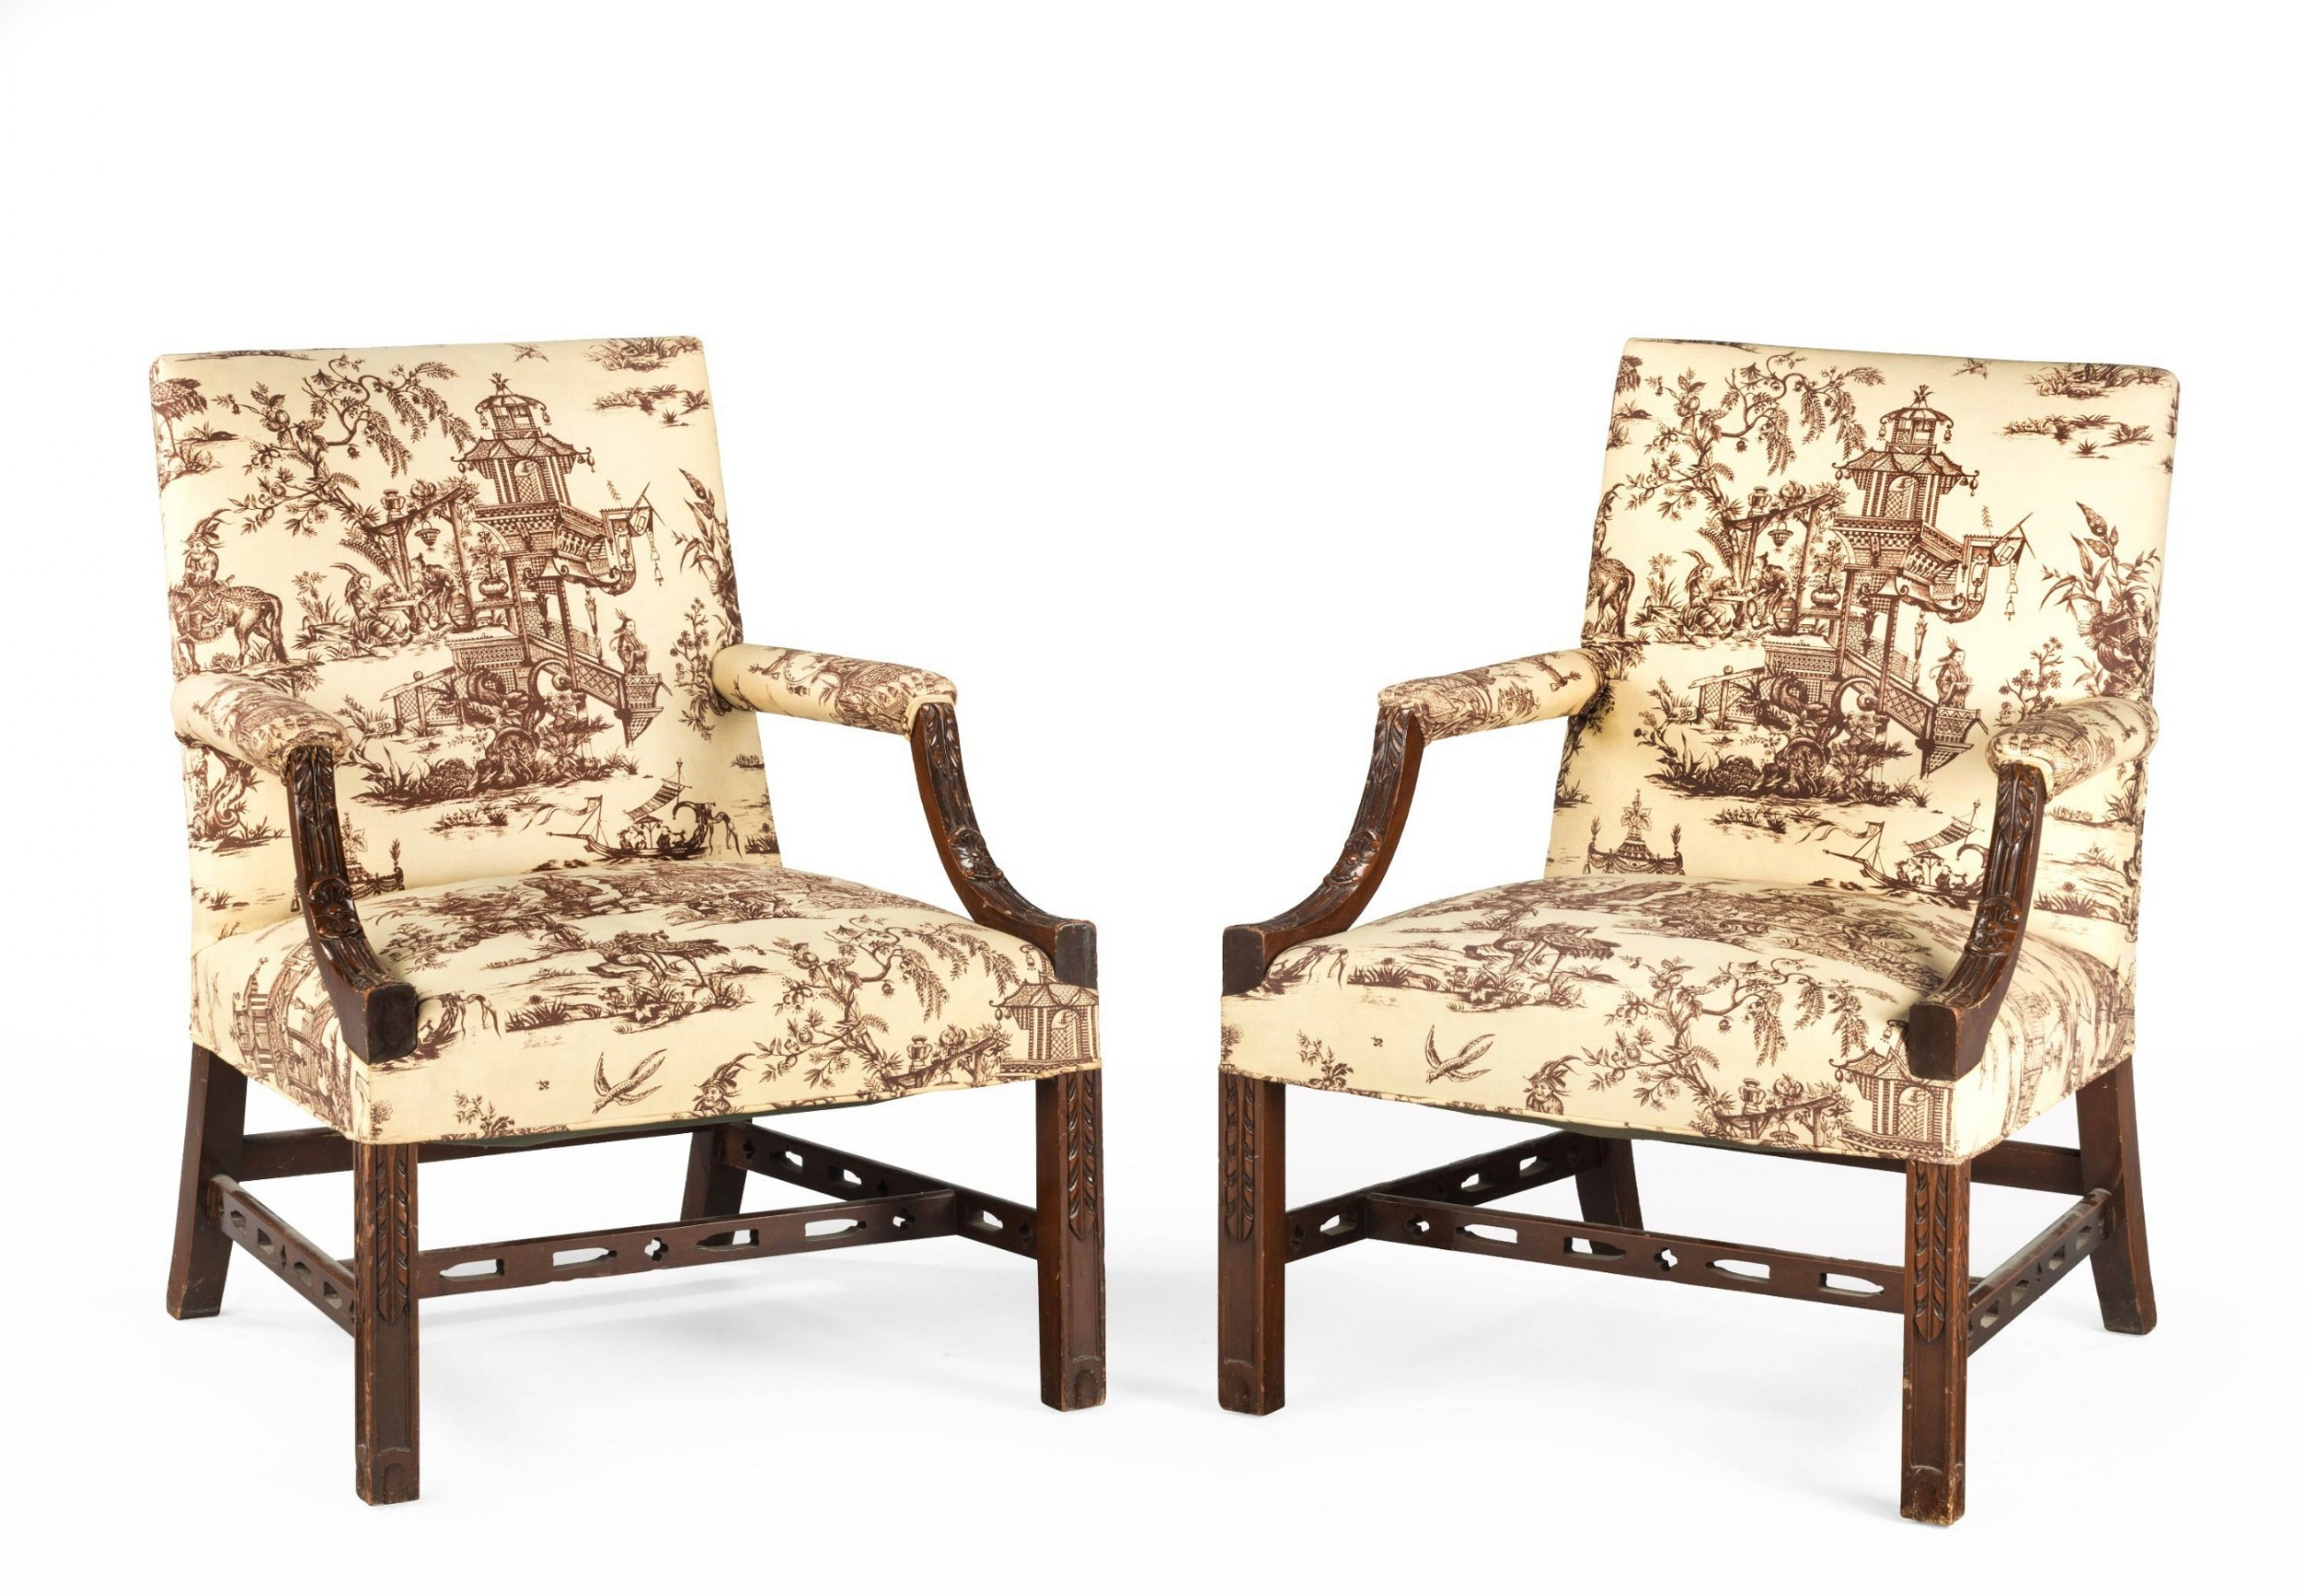 pair of early 20th century mahogany framed gainsborough chairs